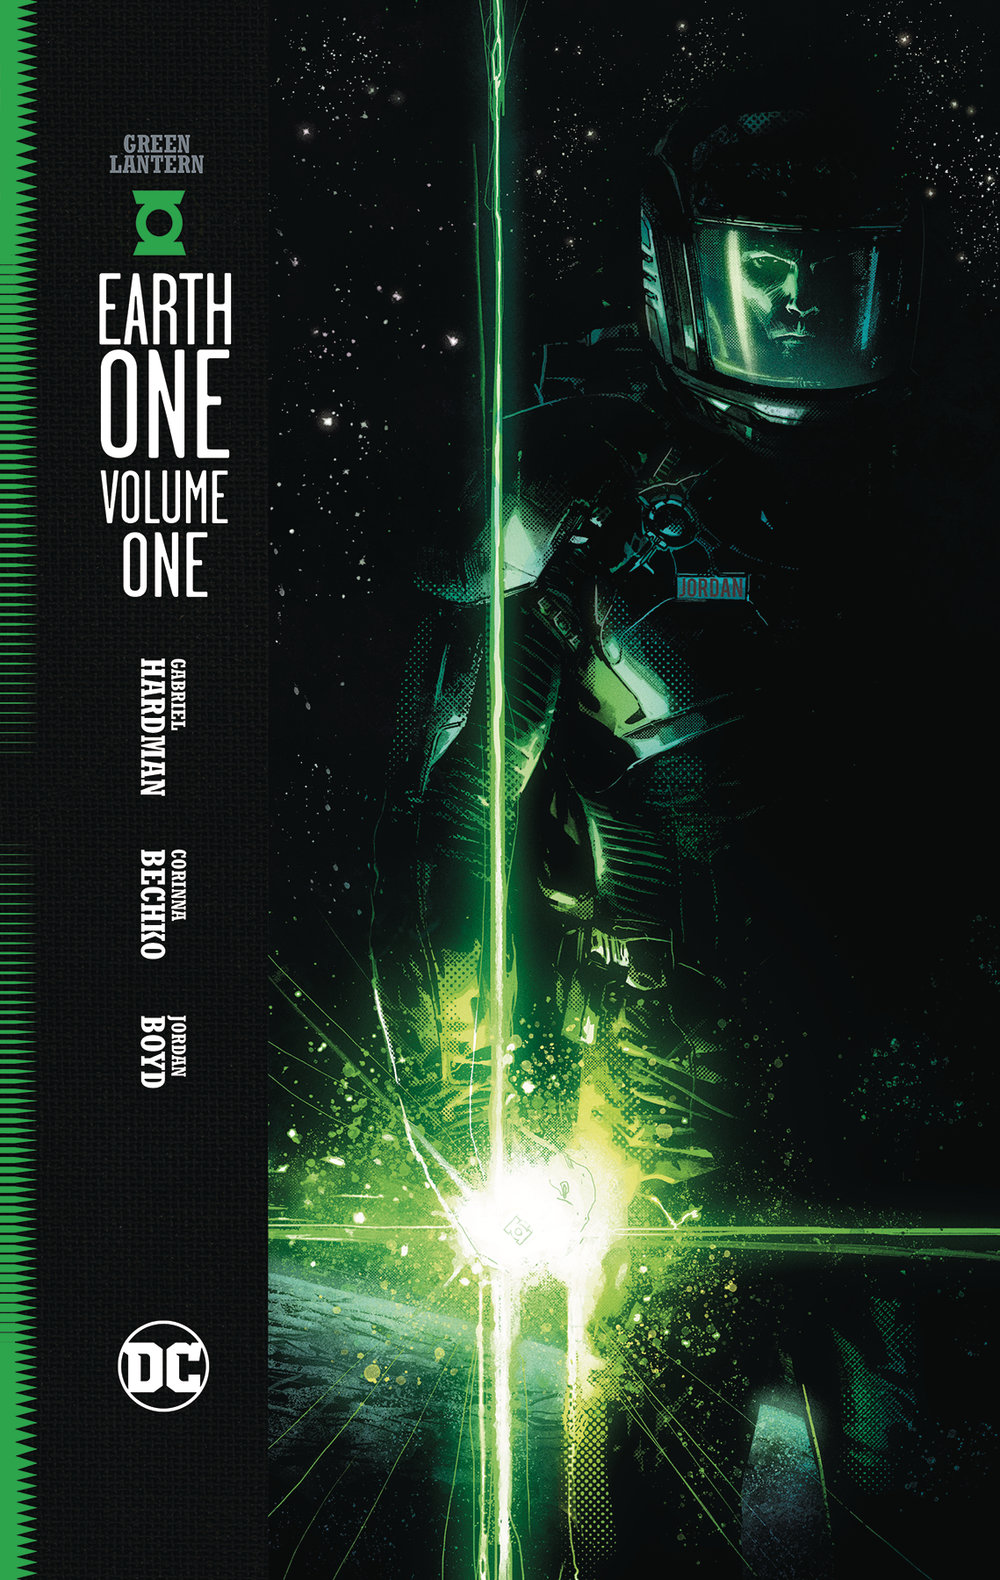 Green Lantern: Earth One Vol. 1  was released on 3/4/2018. We are anxiously awaiting a sequel.